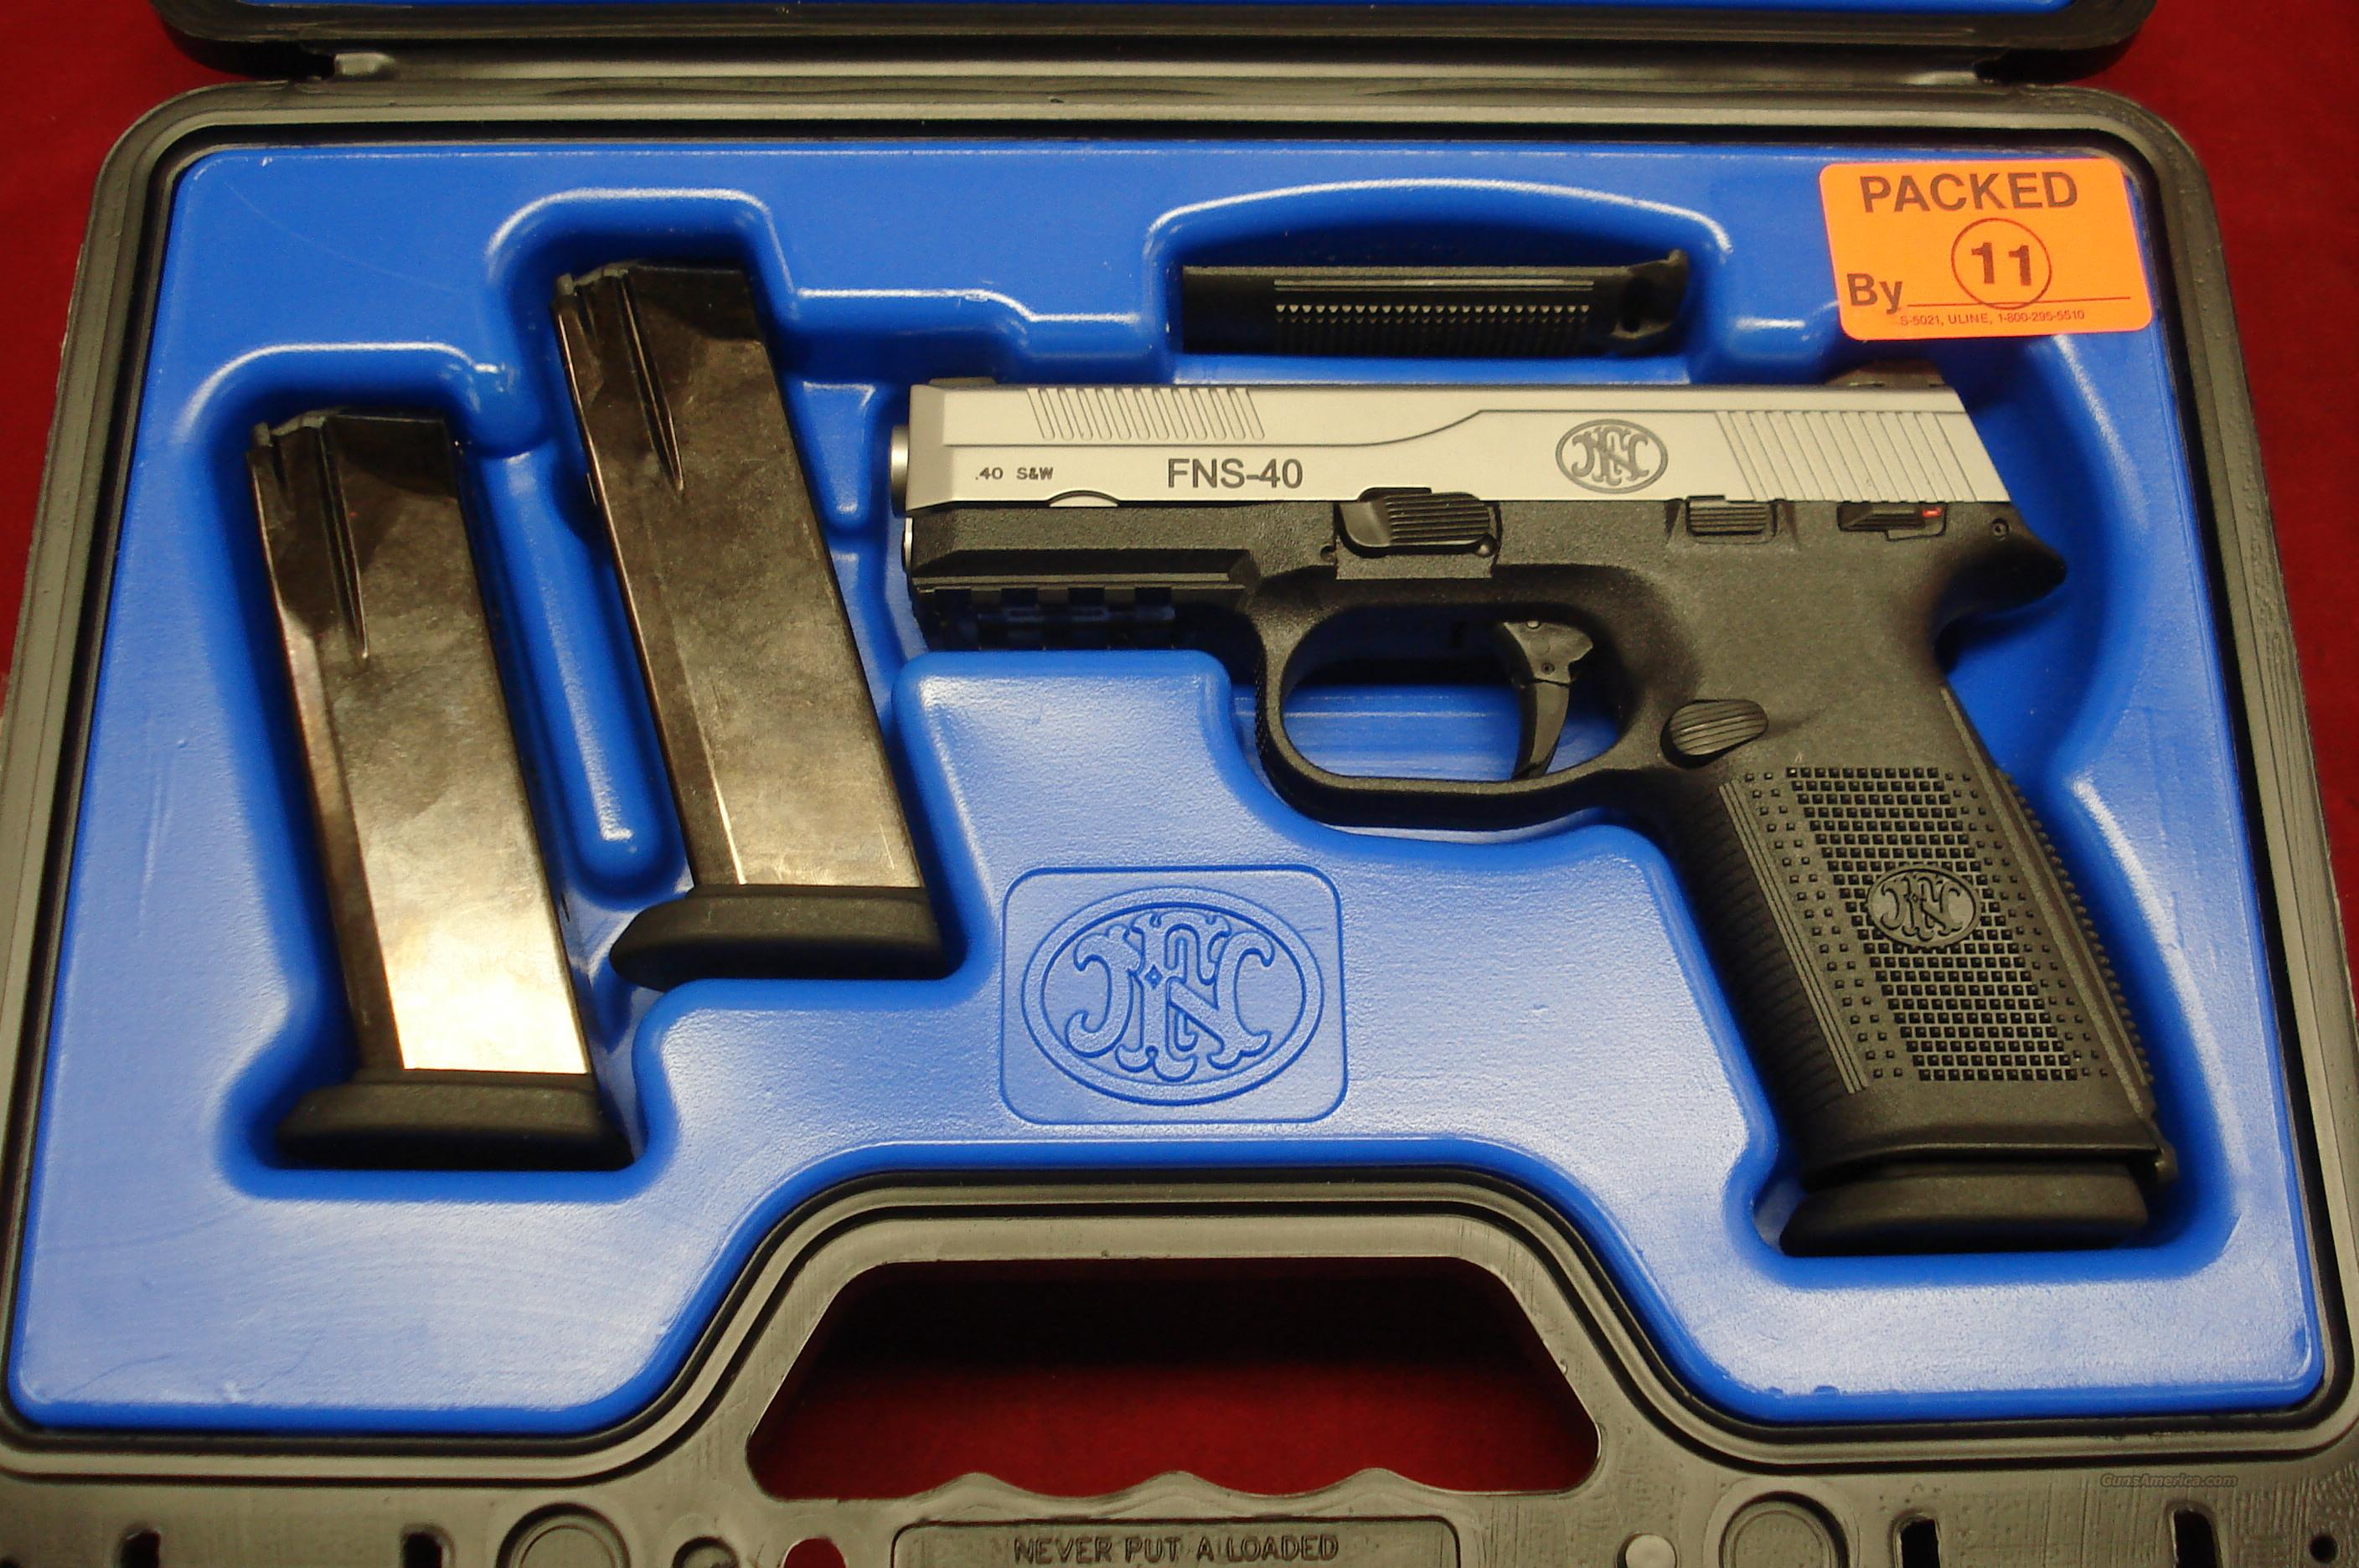 FN FNS-40 STAINLESS .40CAL. WITH NIGHT SIGHTS NEW  Guns > Pistols > FNH - Fabrique Nationale (FN) Pistols > FNP